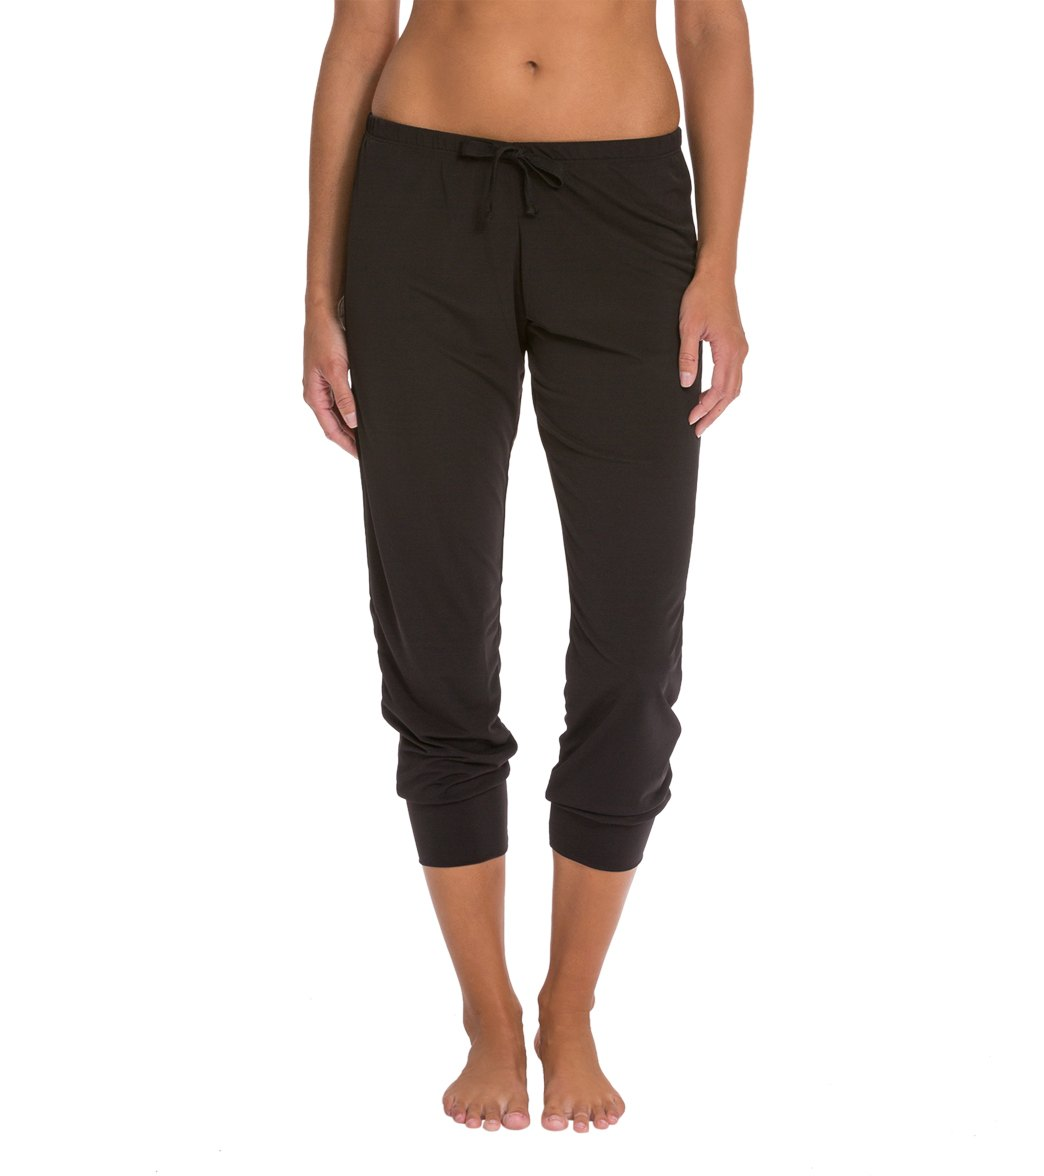 df9c729e839cd Onzie Sweatpant Joggers at YogaOutlet.com - Free Shipping